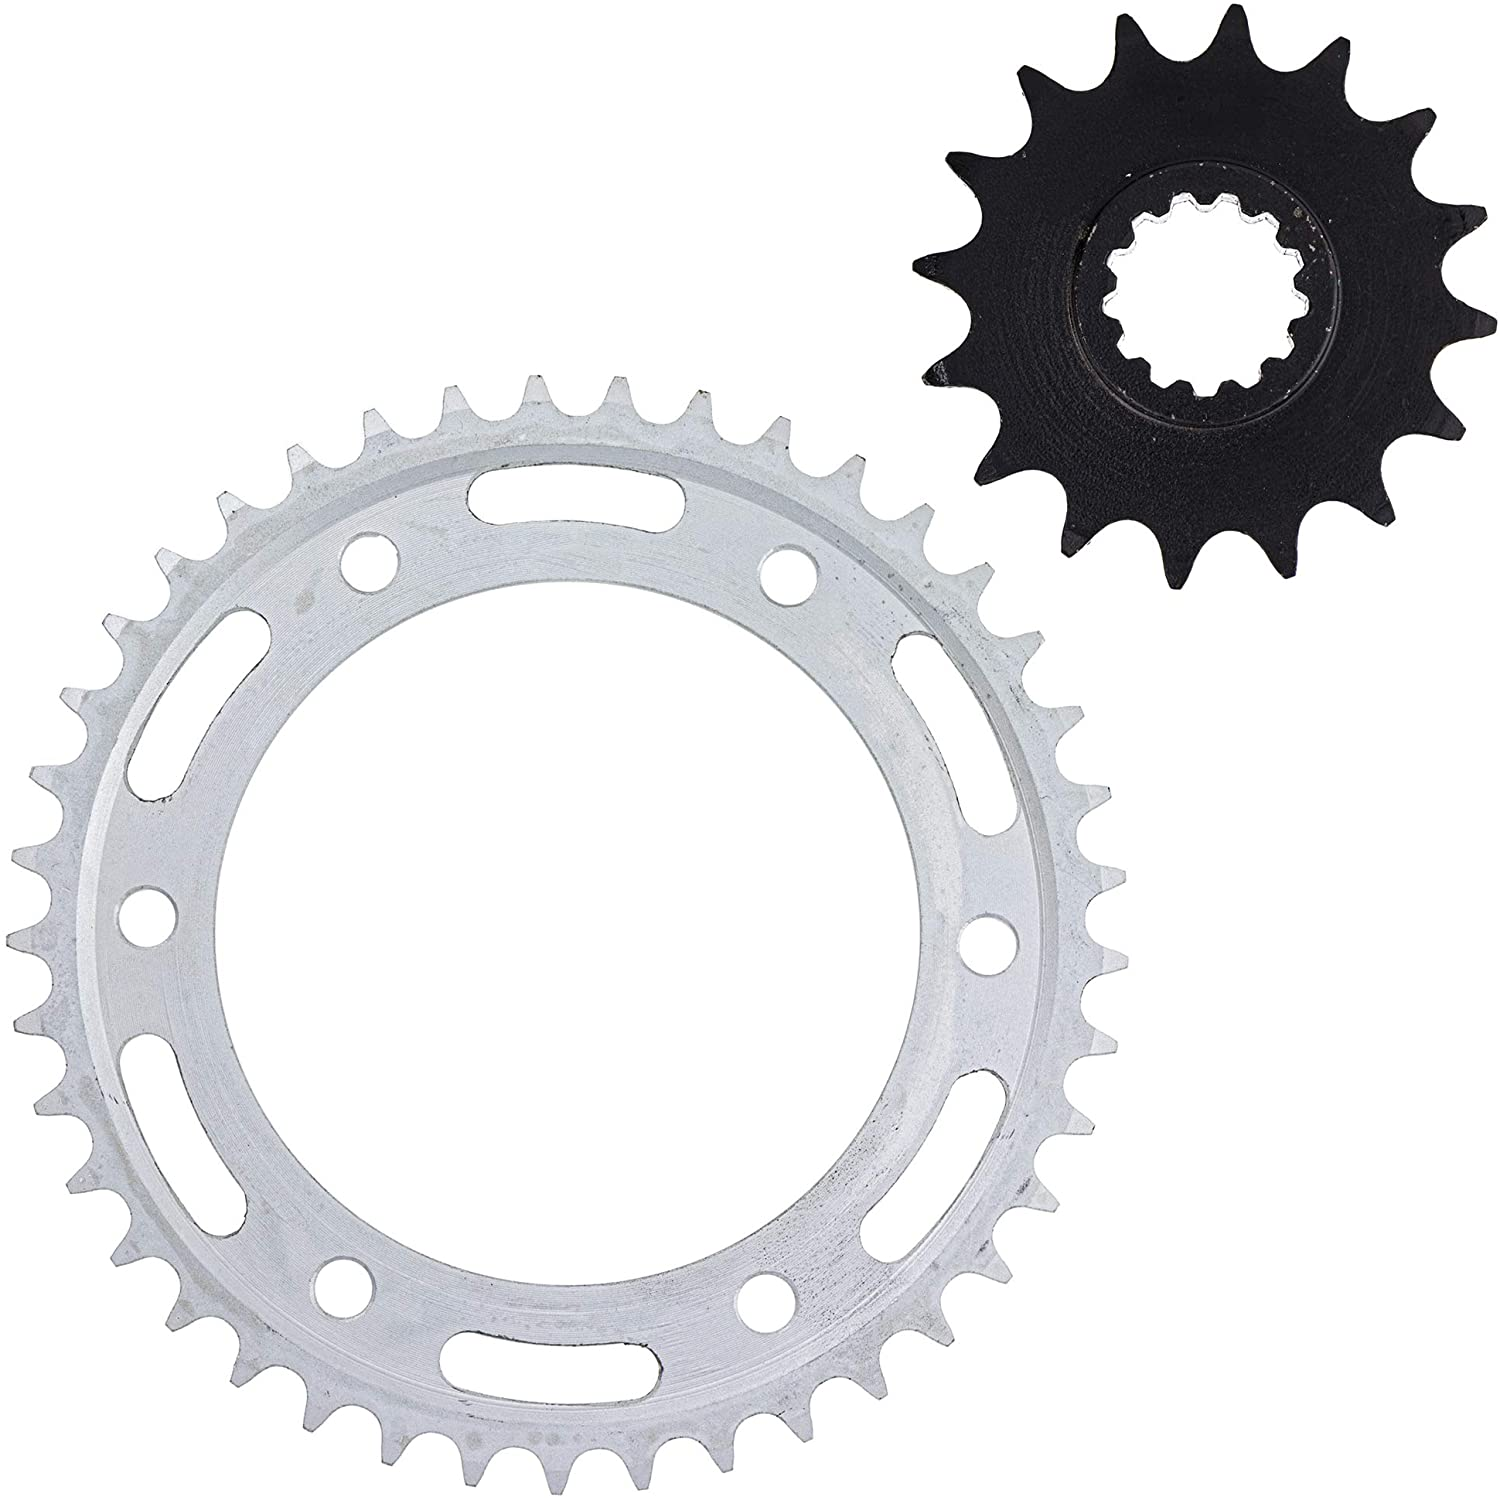 NICHE 525 Pitch Front 16T Rear 41T Drive Sprocket Kit For 2007-2016 Honda CBR600RR